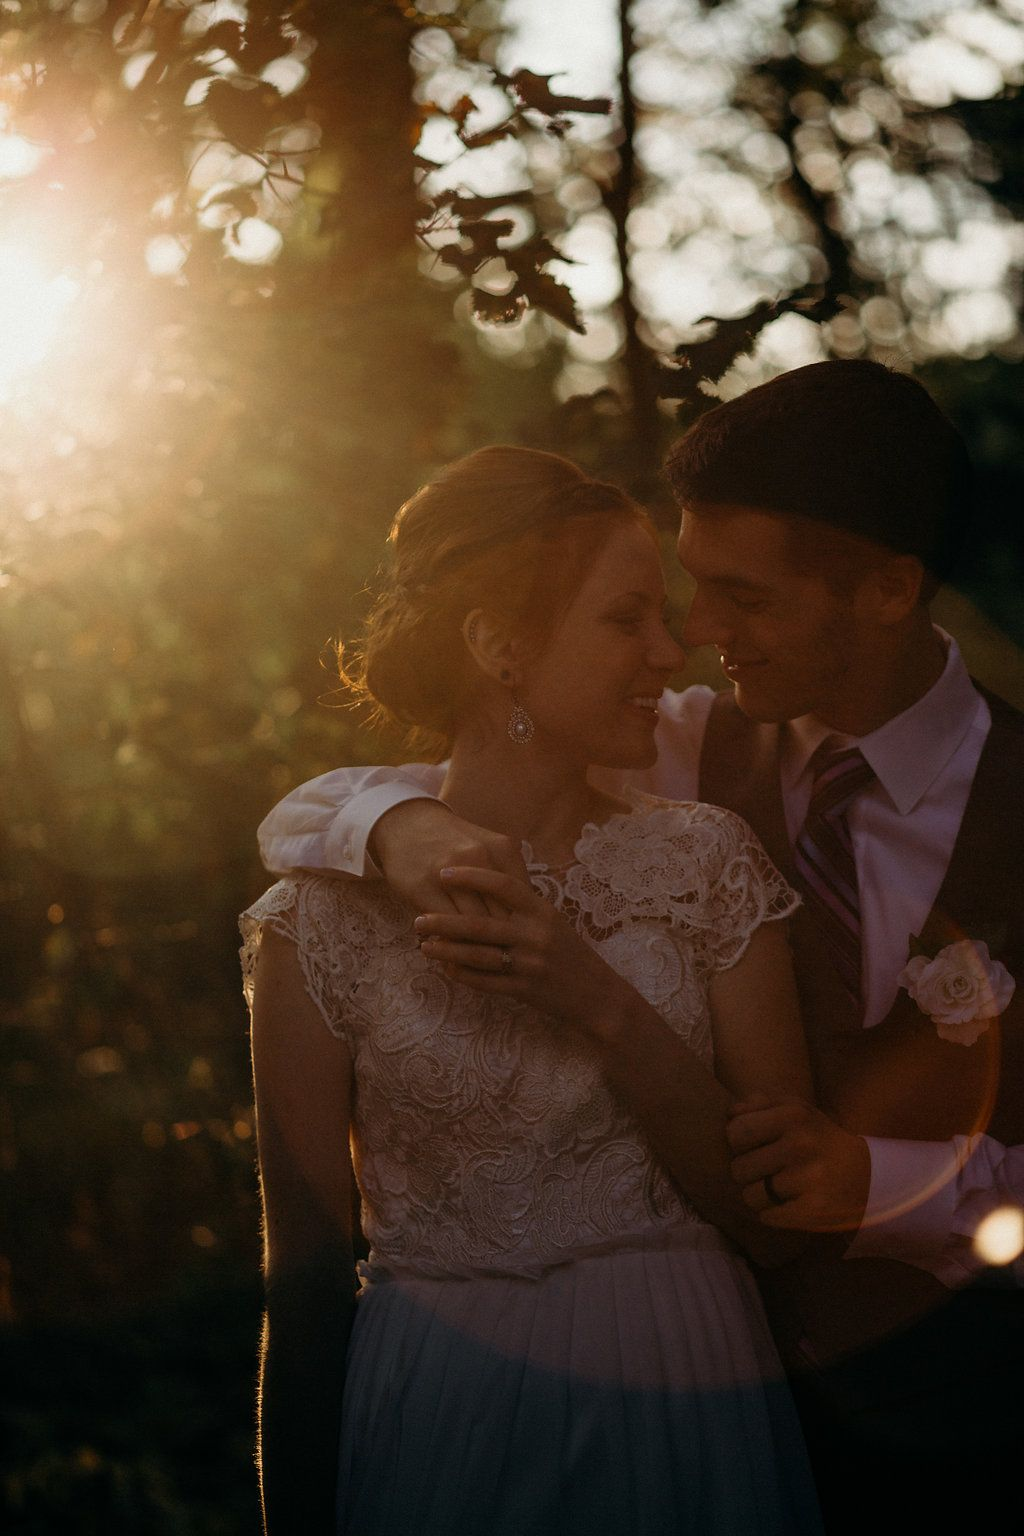 Bride and Groom Pictures, Wedding Photography, Dark and Moody ...